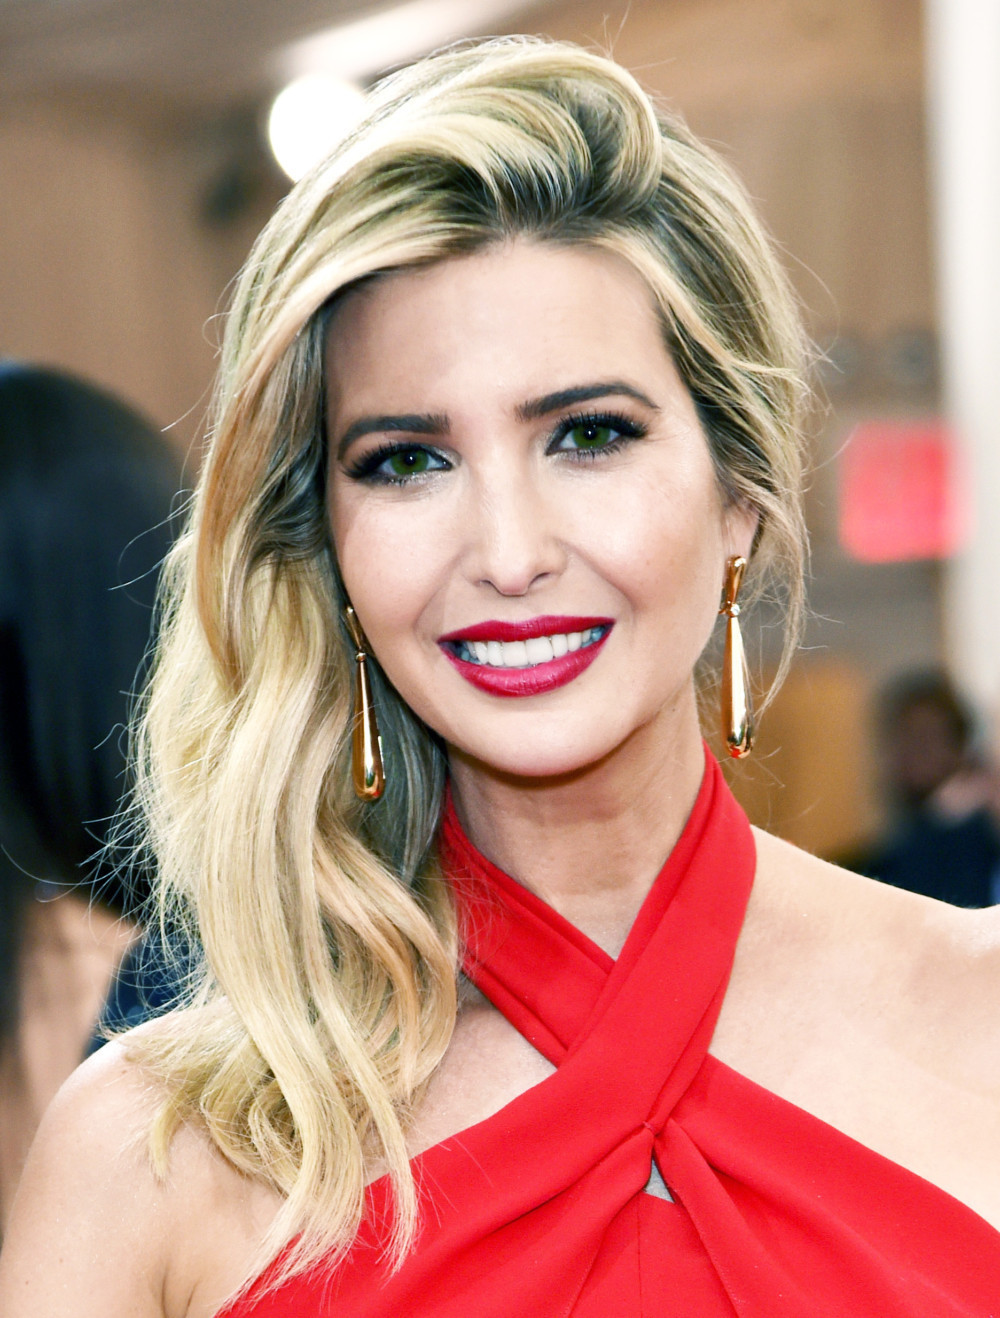 Ivanka Trump Free Download Wallpaper For Mobile